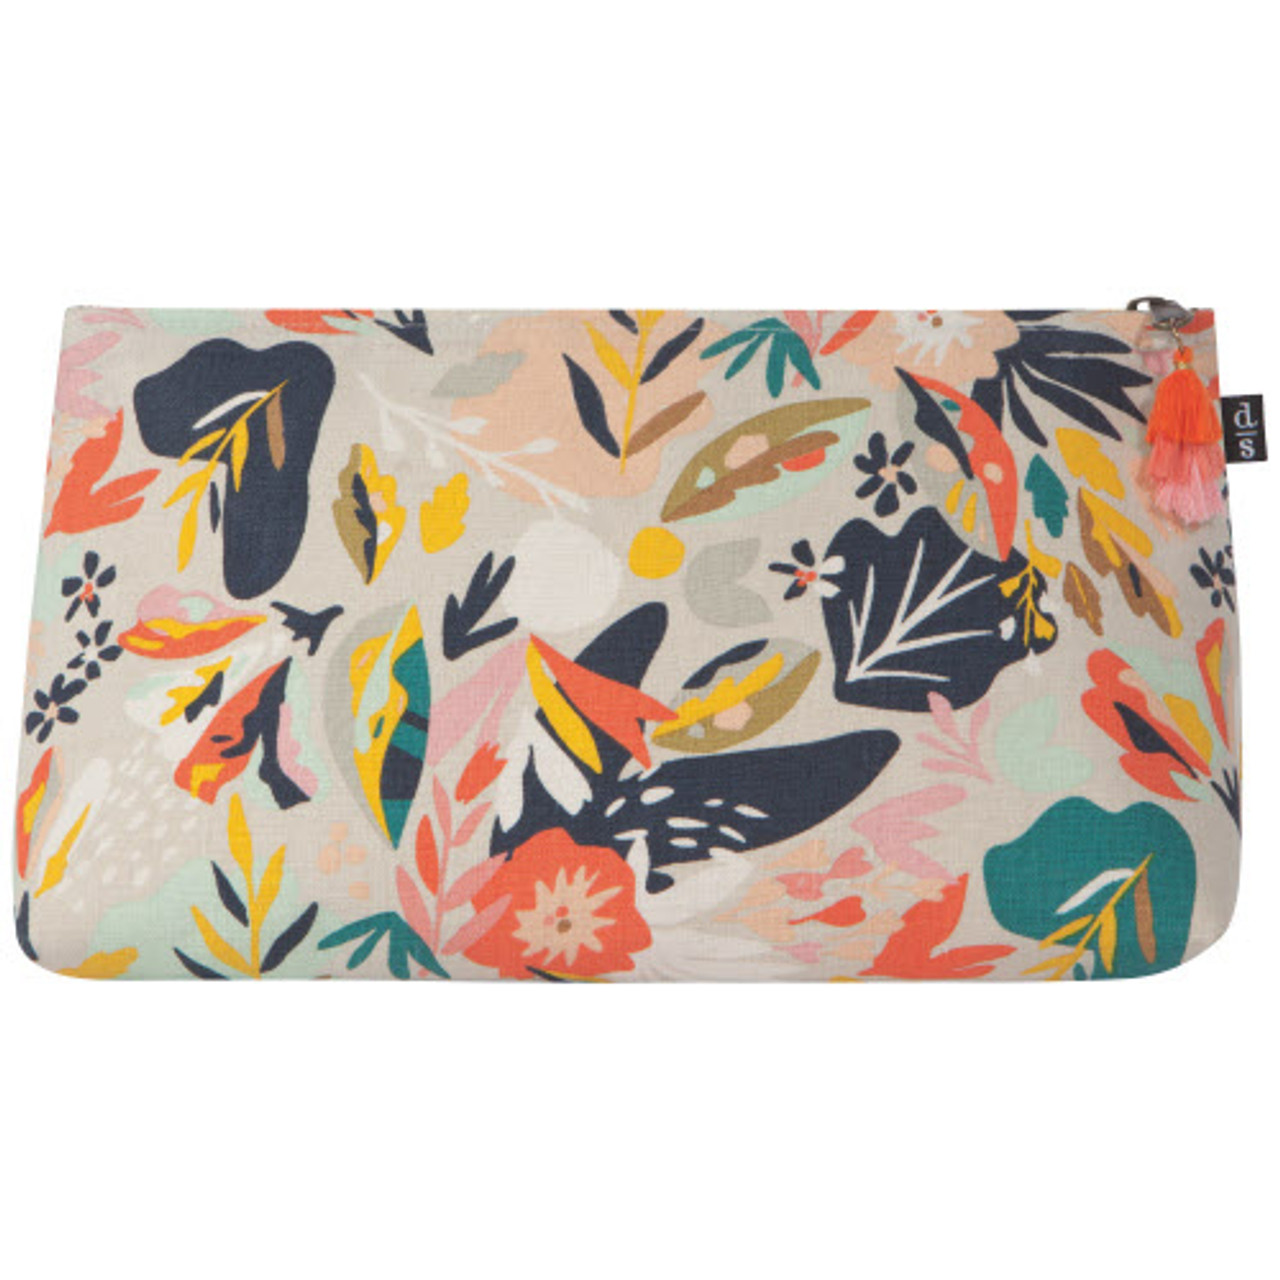 COSMETIC BAG LARGE - SUPERBLOOM